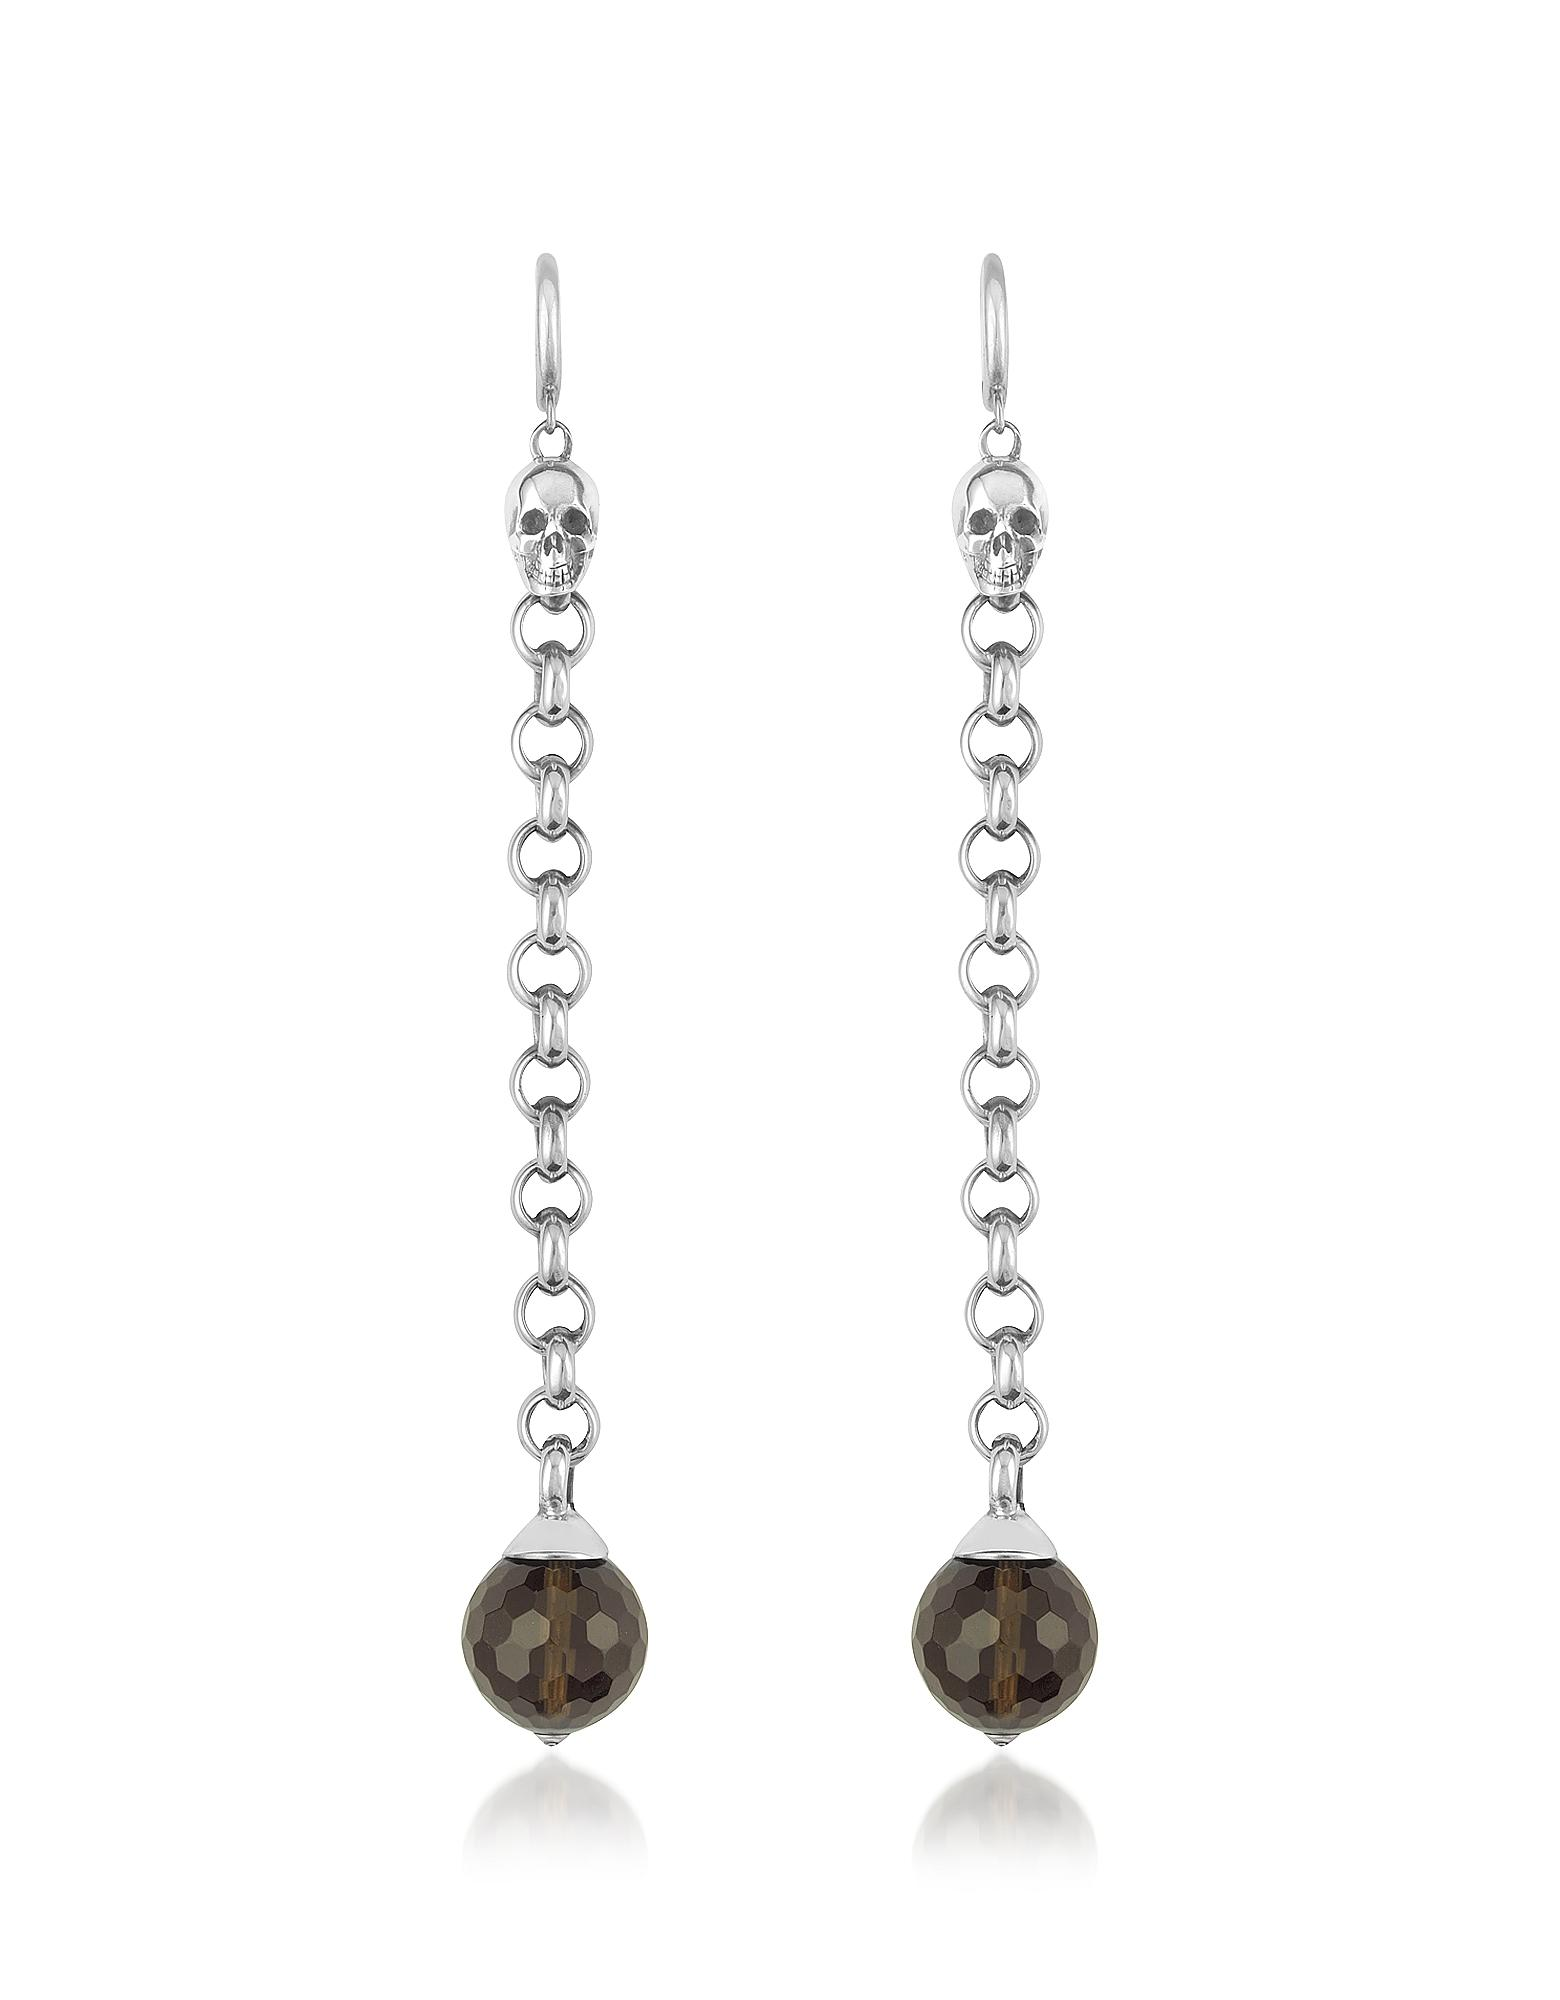 Ugo Cacciatori Smoky Quartz Orb & Skull Sterling Earrings In Silver